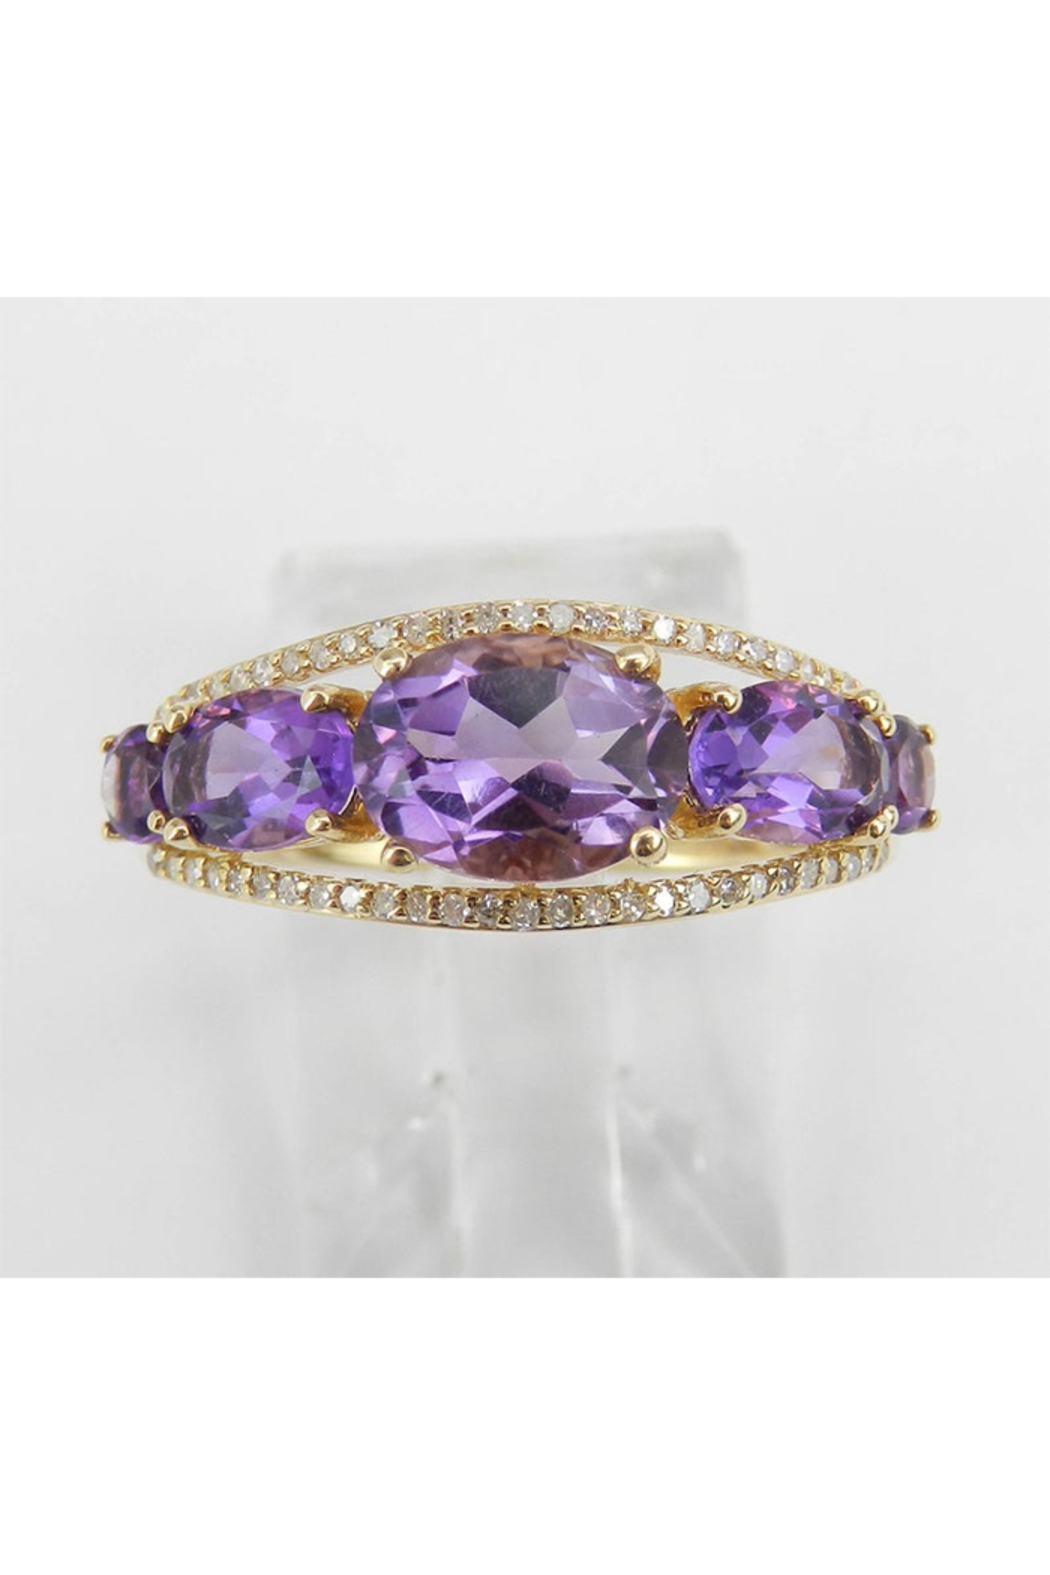 Margolin & Co 14K Yellow Gold Diamond and Amethyst Cocktail Ring Anniversary Band Size 7 Stackable Look - Front Full Image